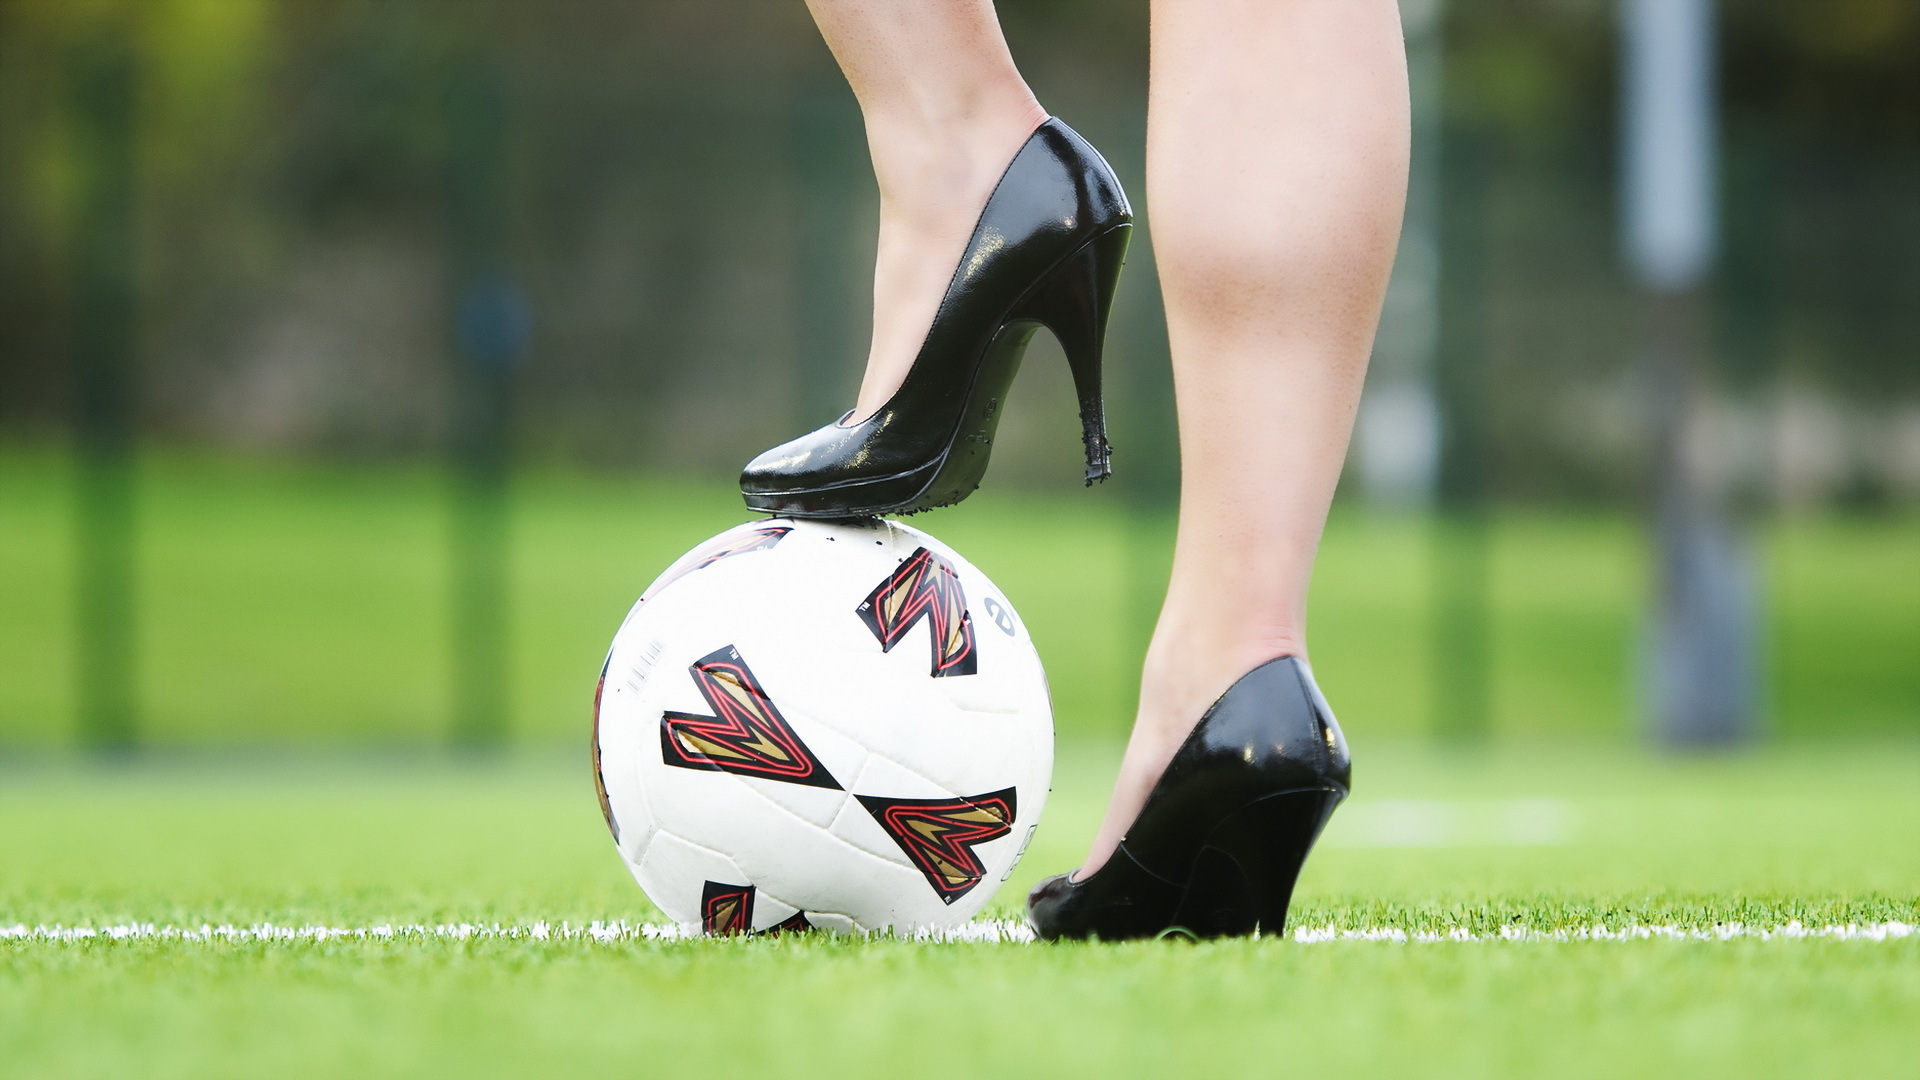 Heels-Soccer-wallpaper-wpc9006001